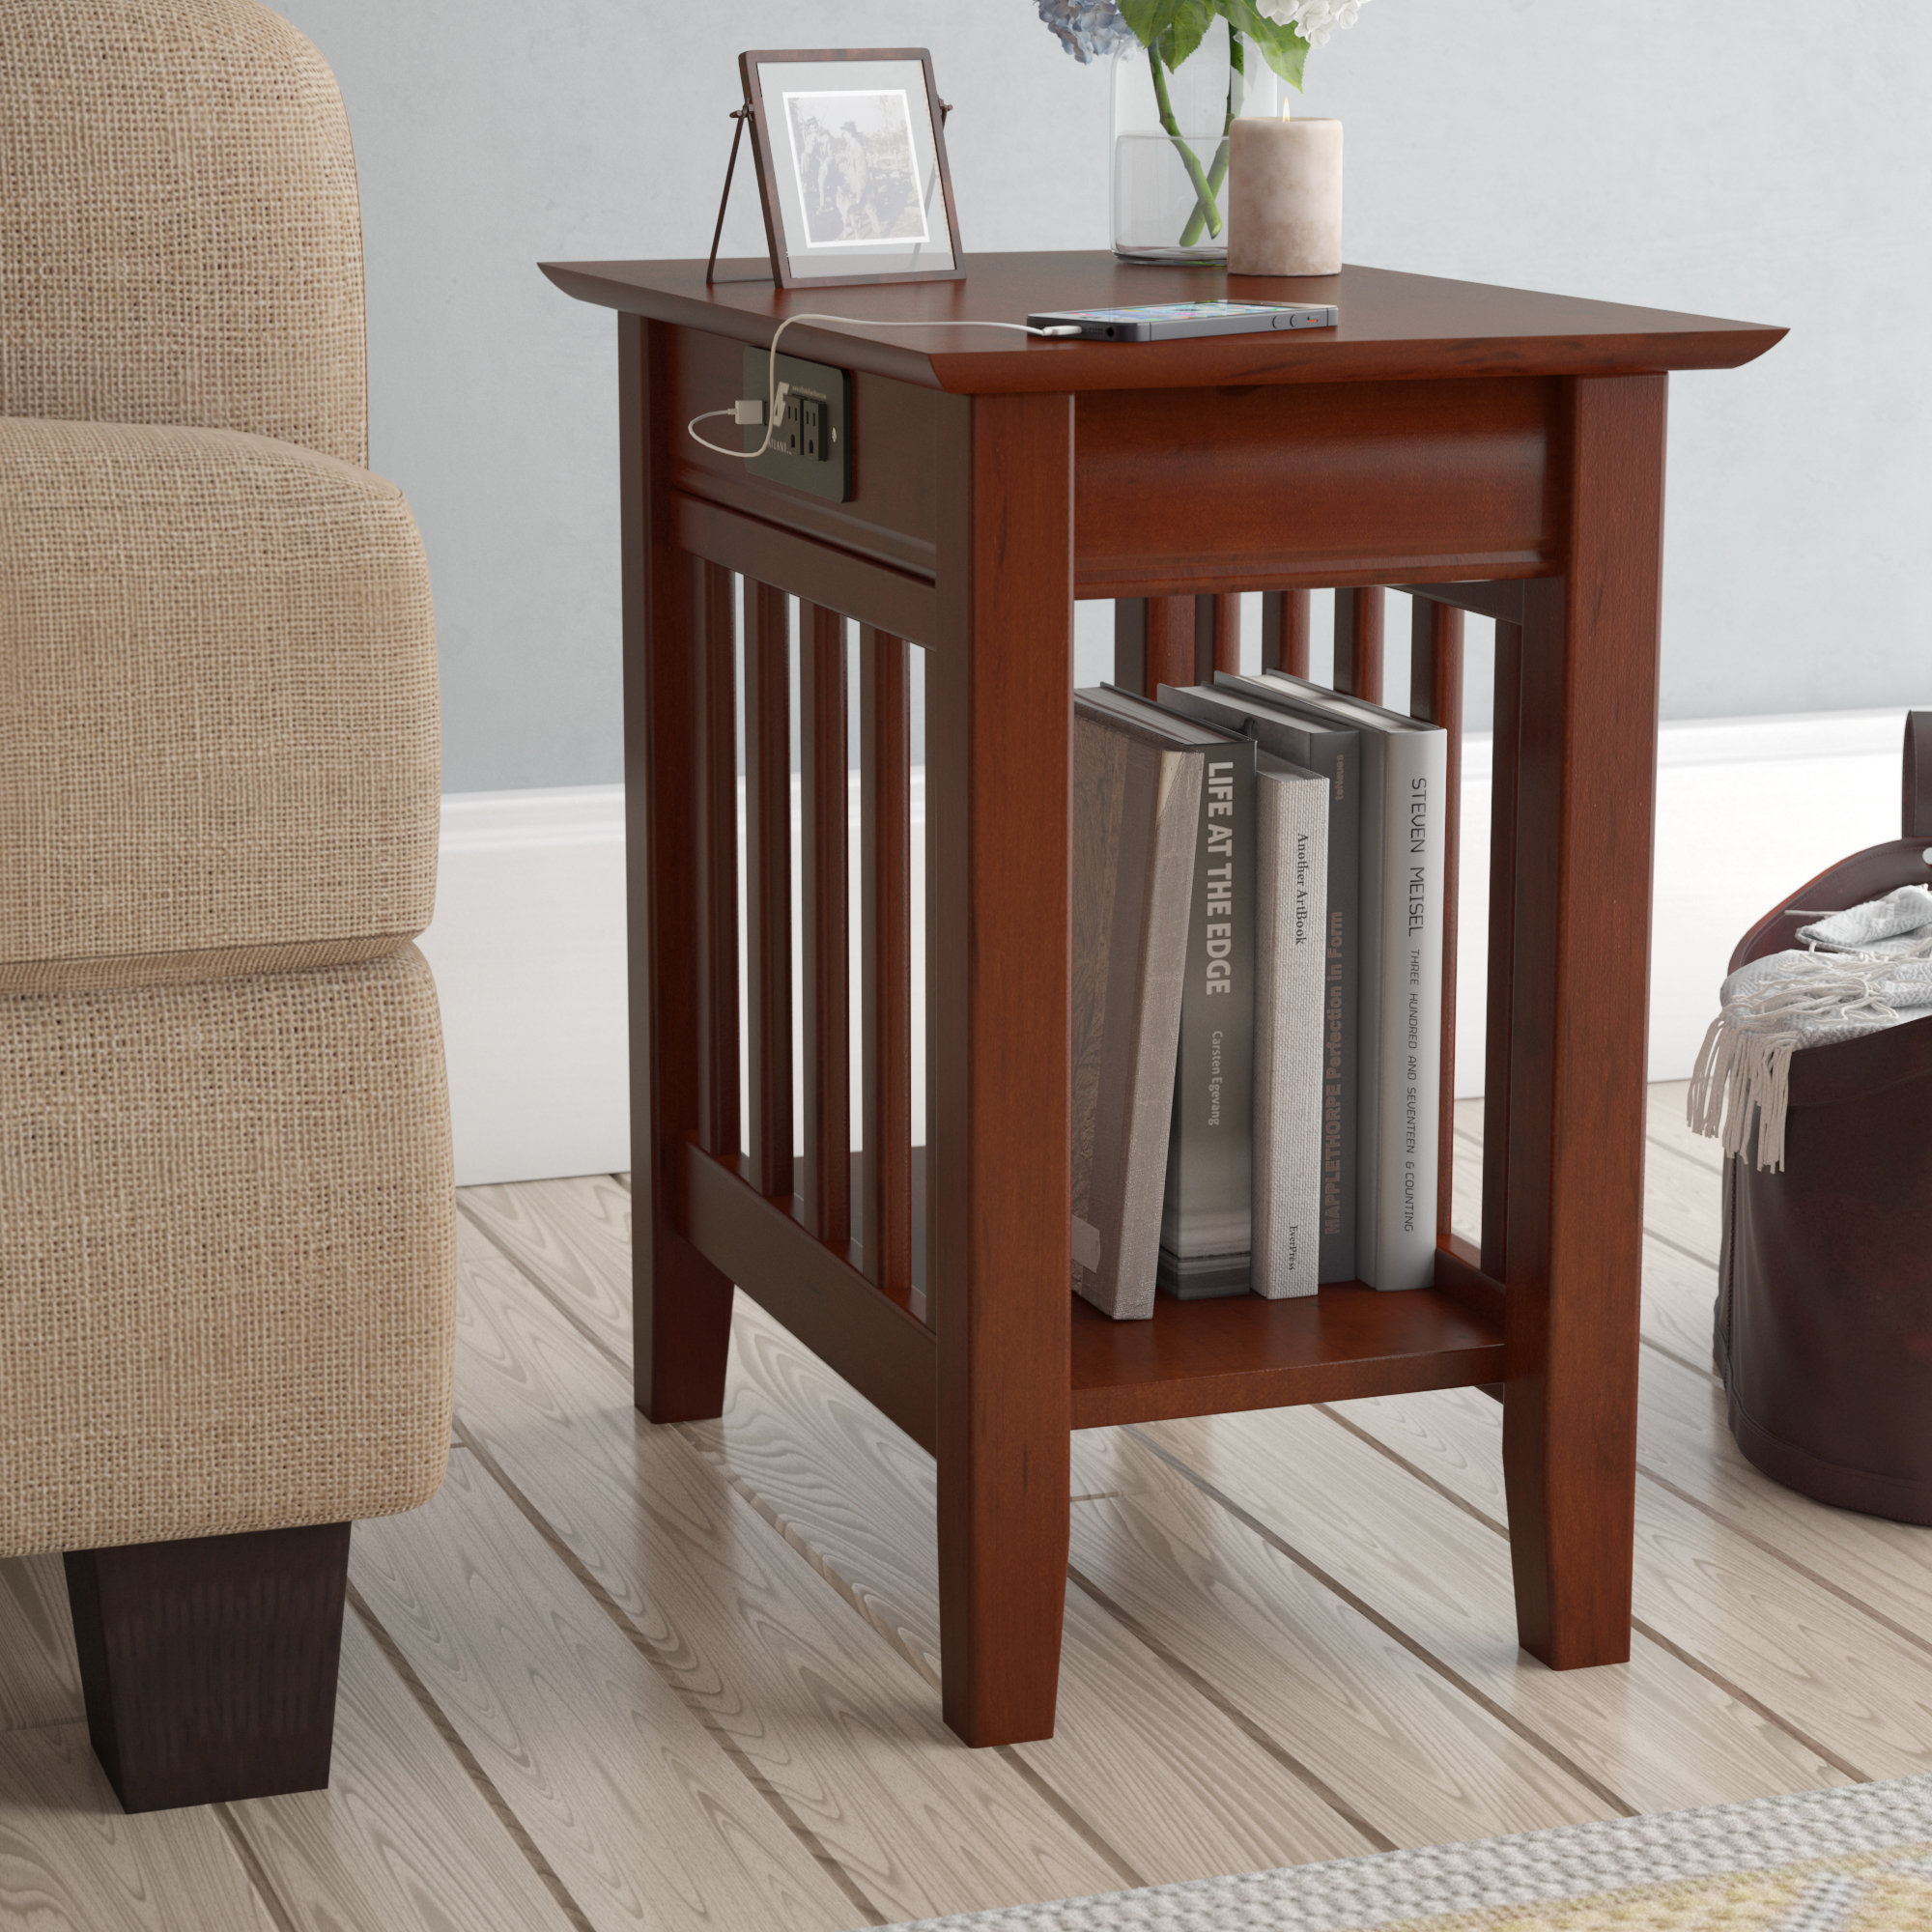 furniture outstanding whitewashed end tables for stunning home side table with storage white glass wide blue wood cream distressed coffee metal black high gloss lamp two floor